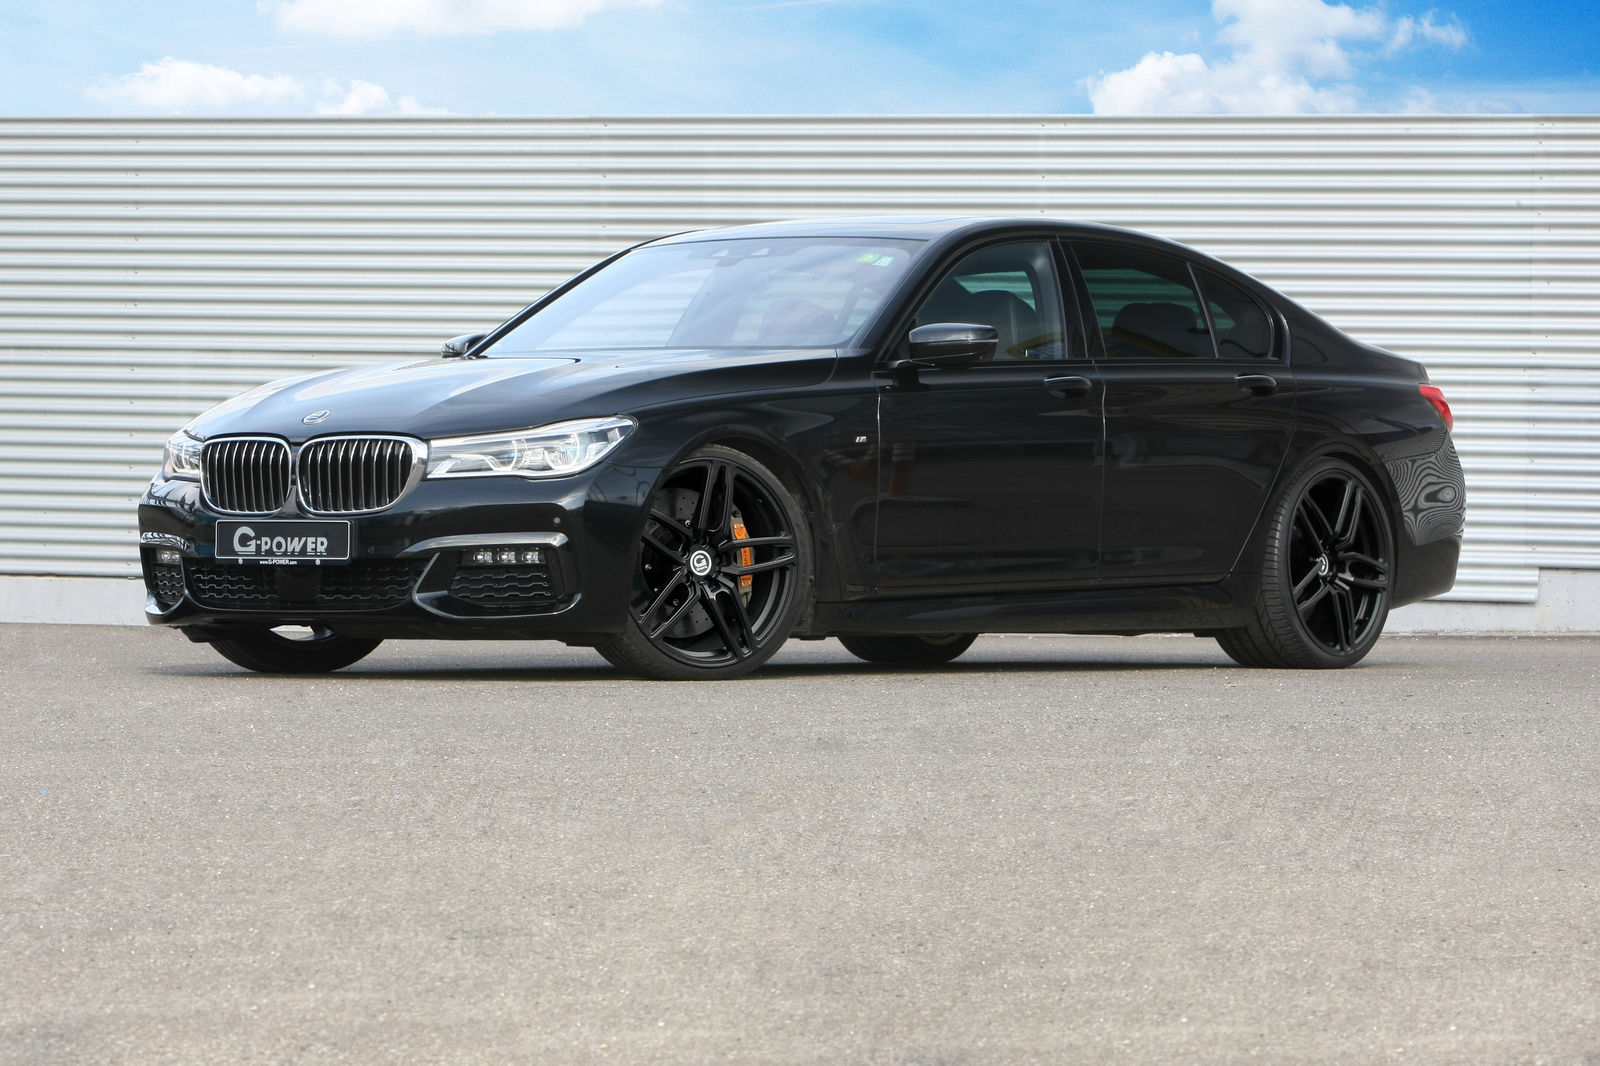 Bmw 750d Quad Turbo Engine Tuned To 460 Hp By G